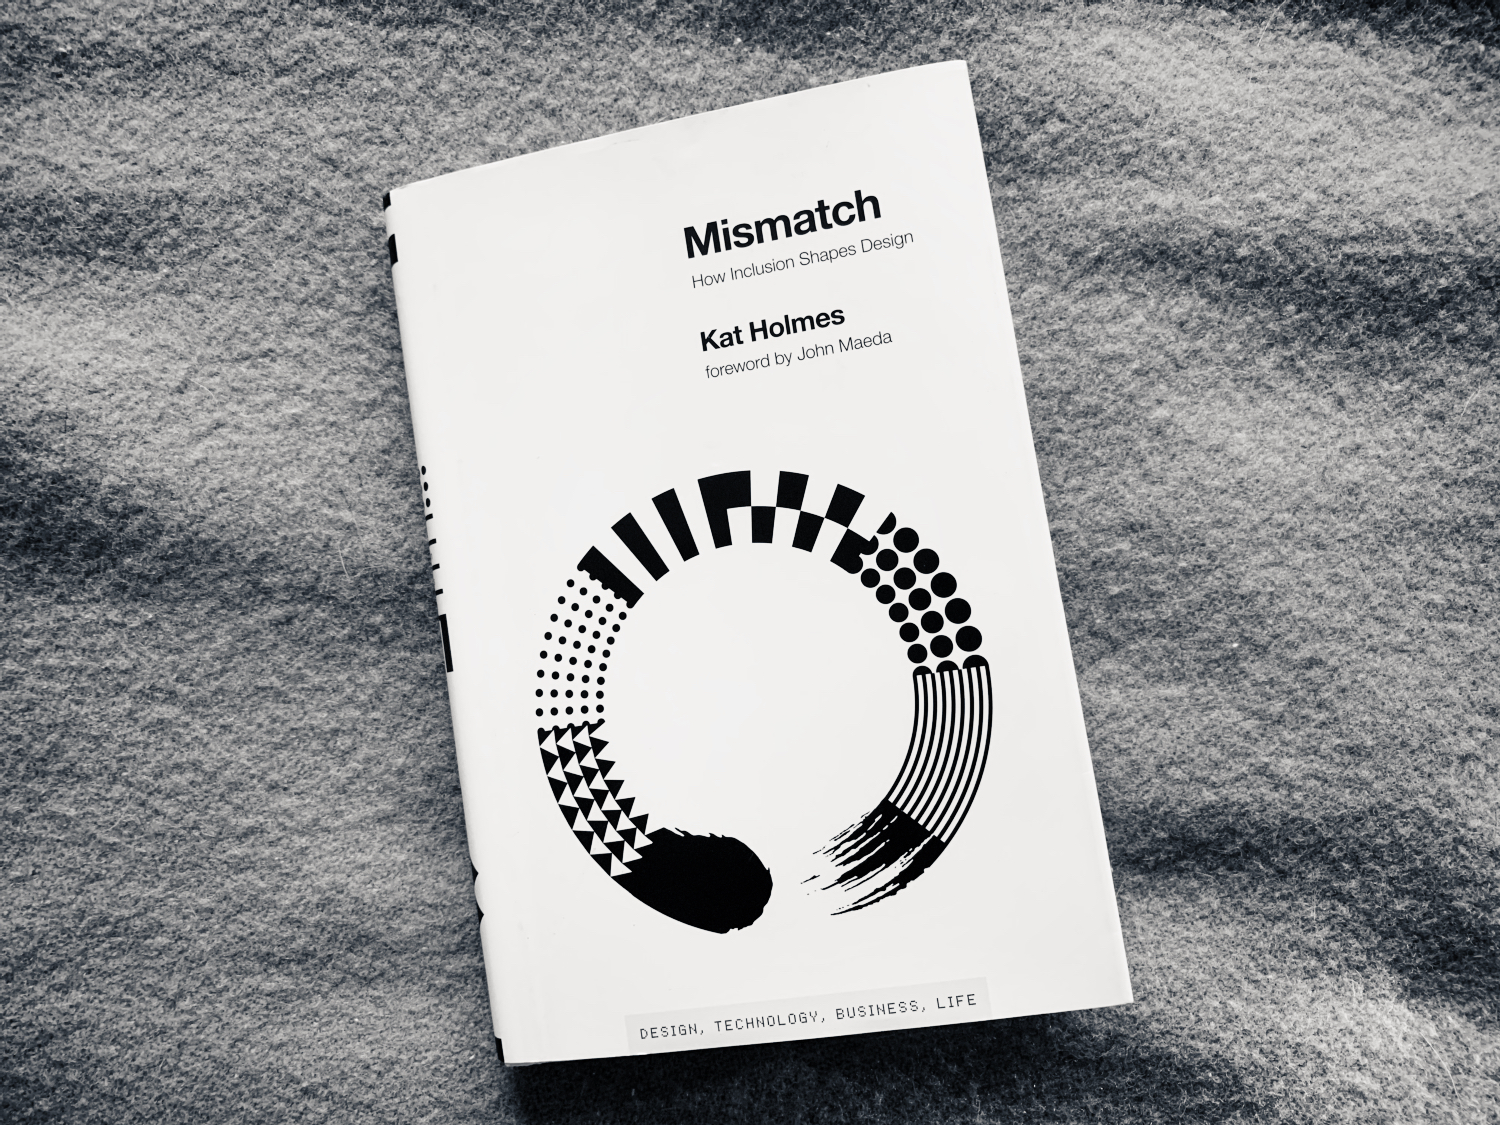 Mismatch book cover